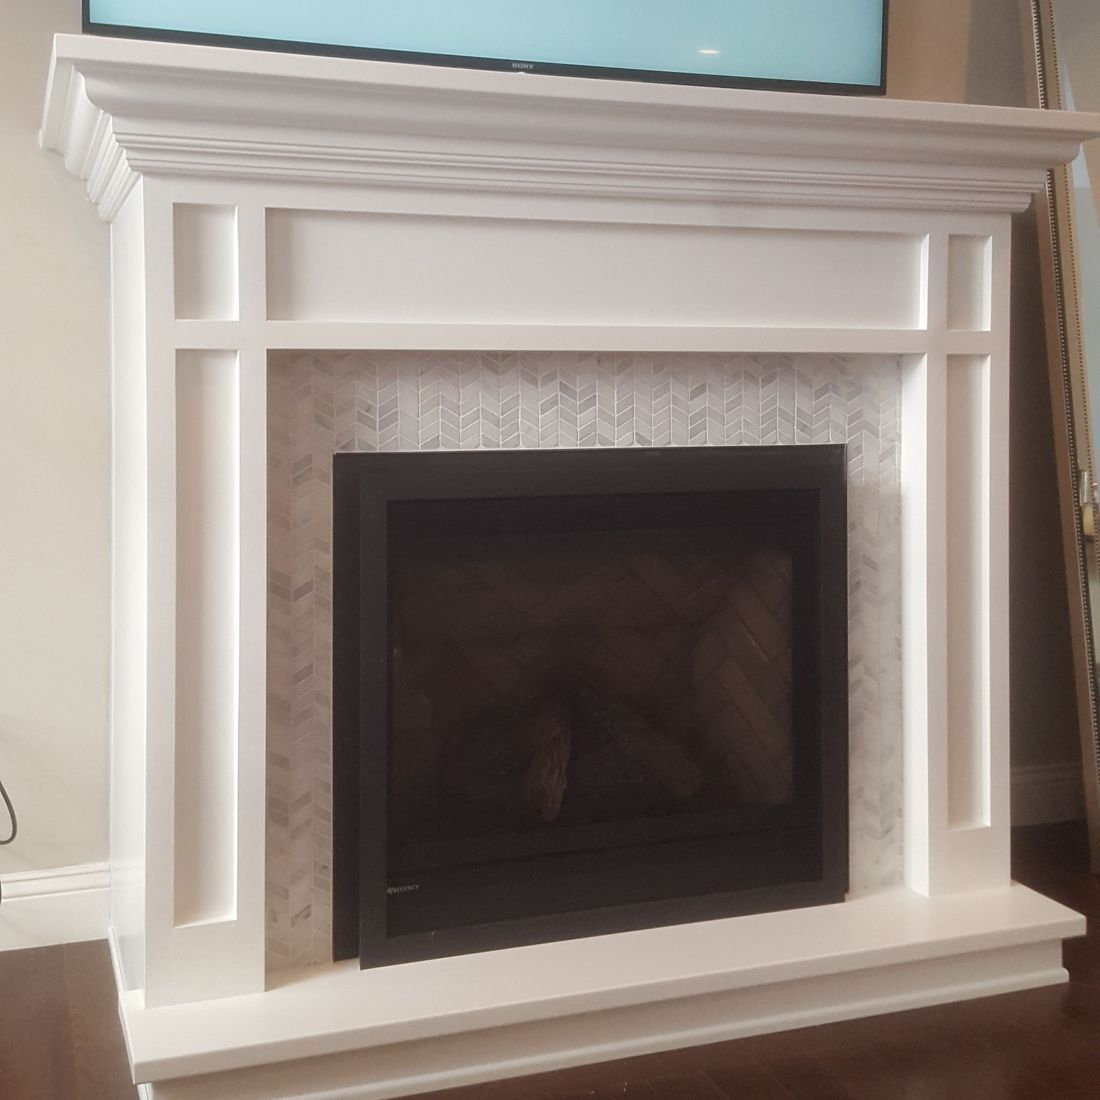 zero clearance fireplace enclosure